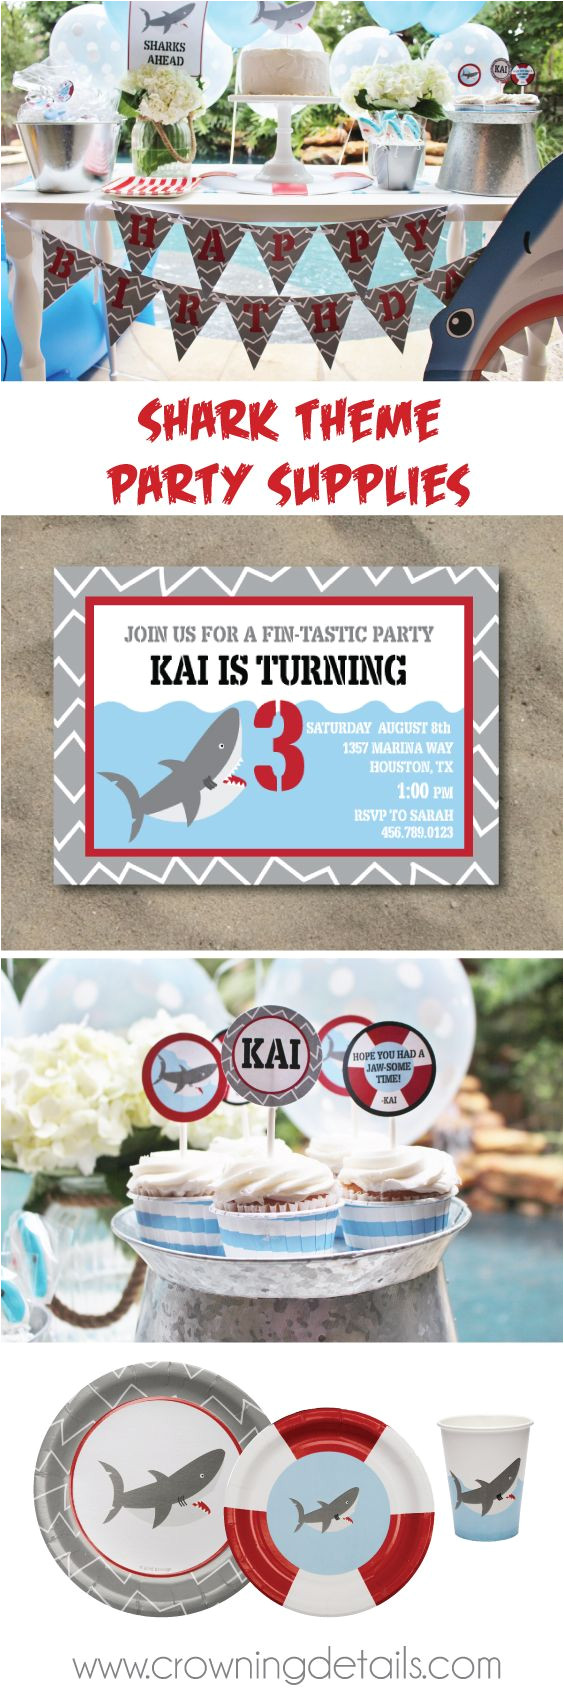 shark party ideas browse our shark party supplies in the online store sharkpartyideas